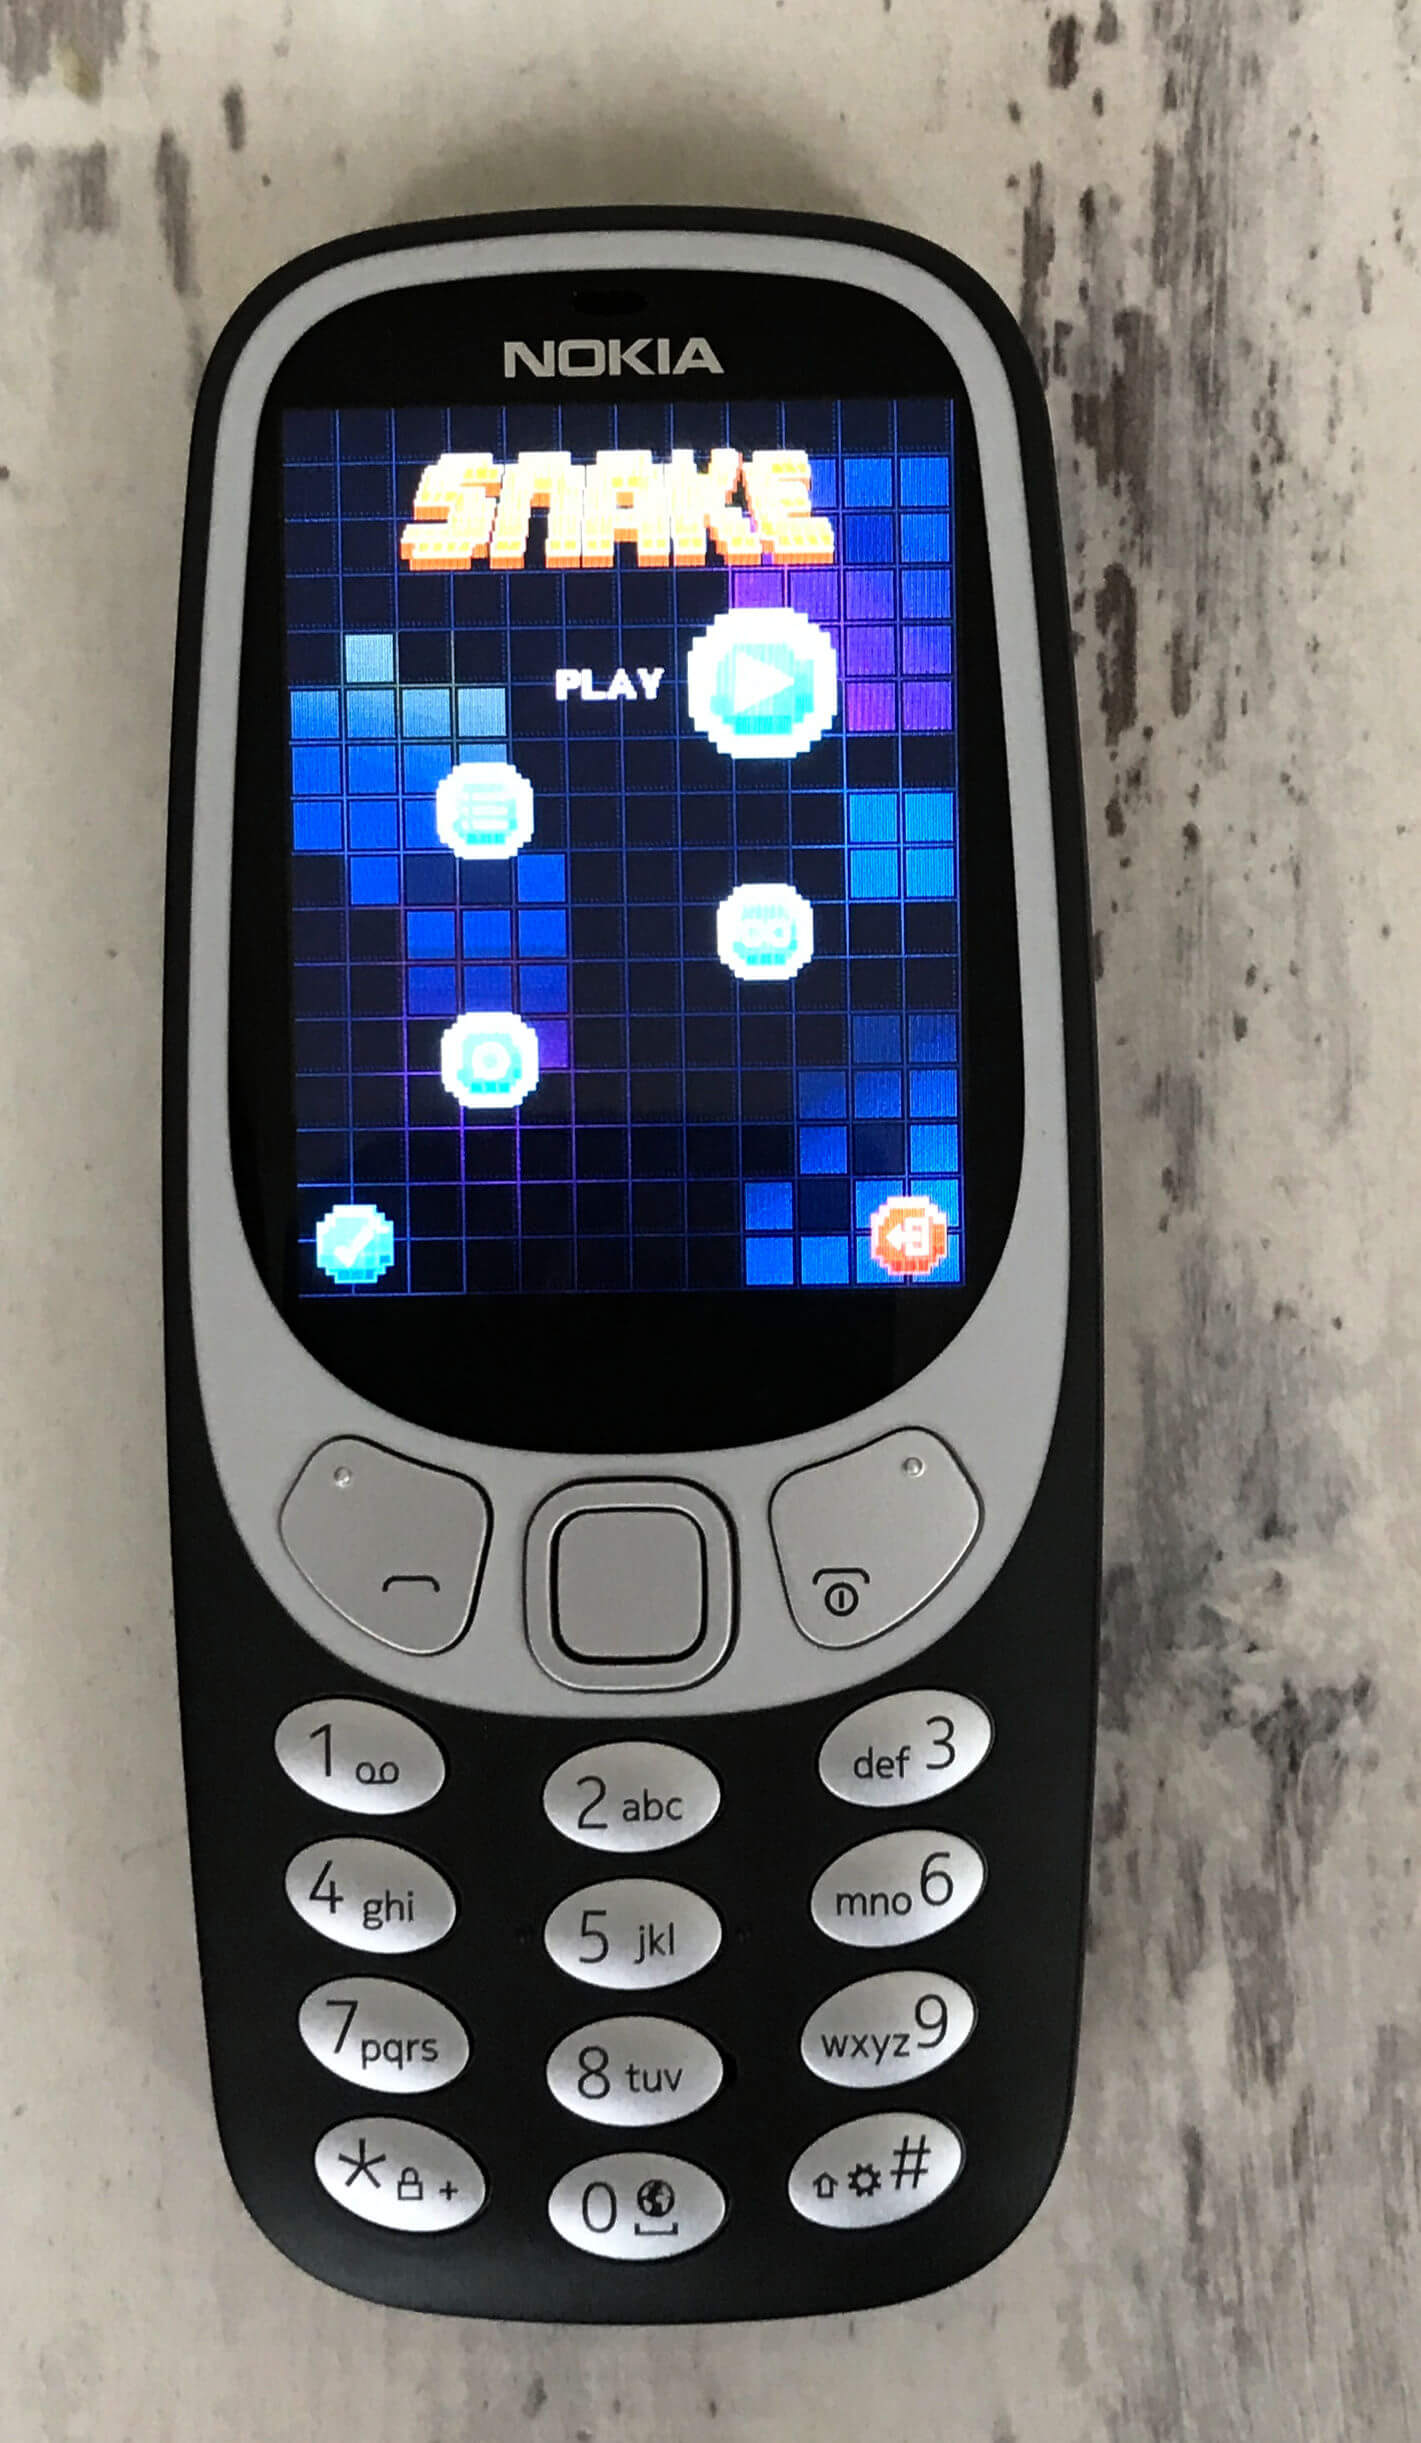 family mobile - Nokia 3310 3G Snake Game screen